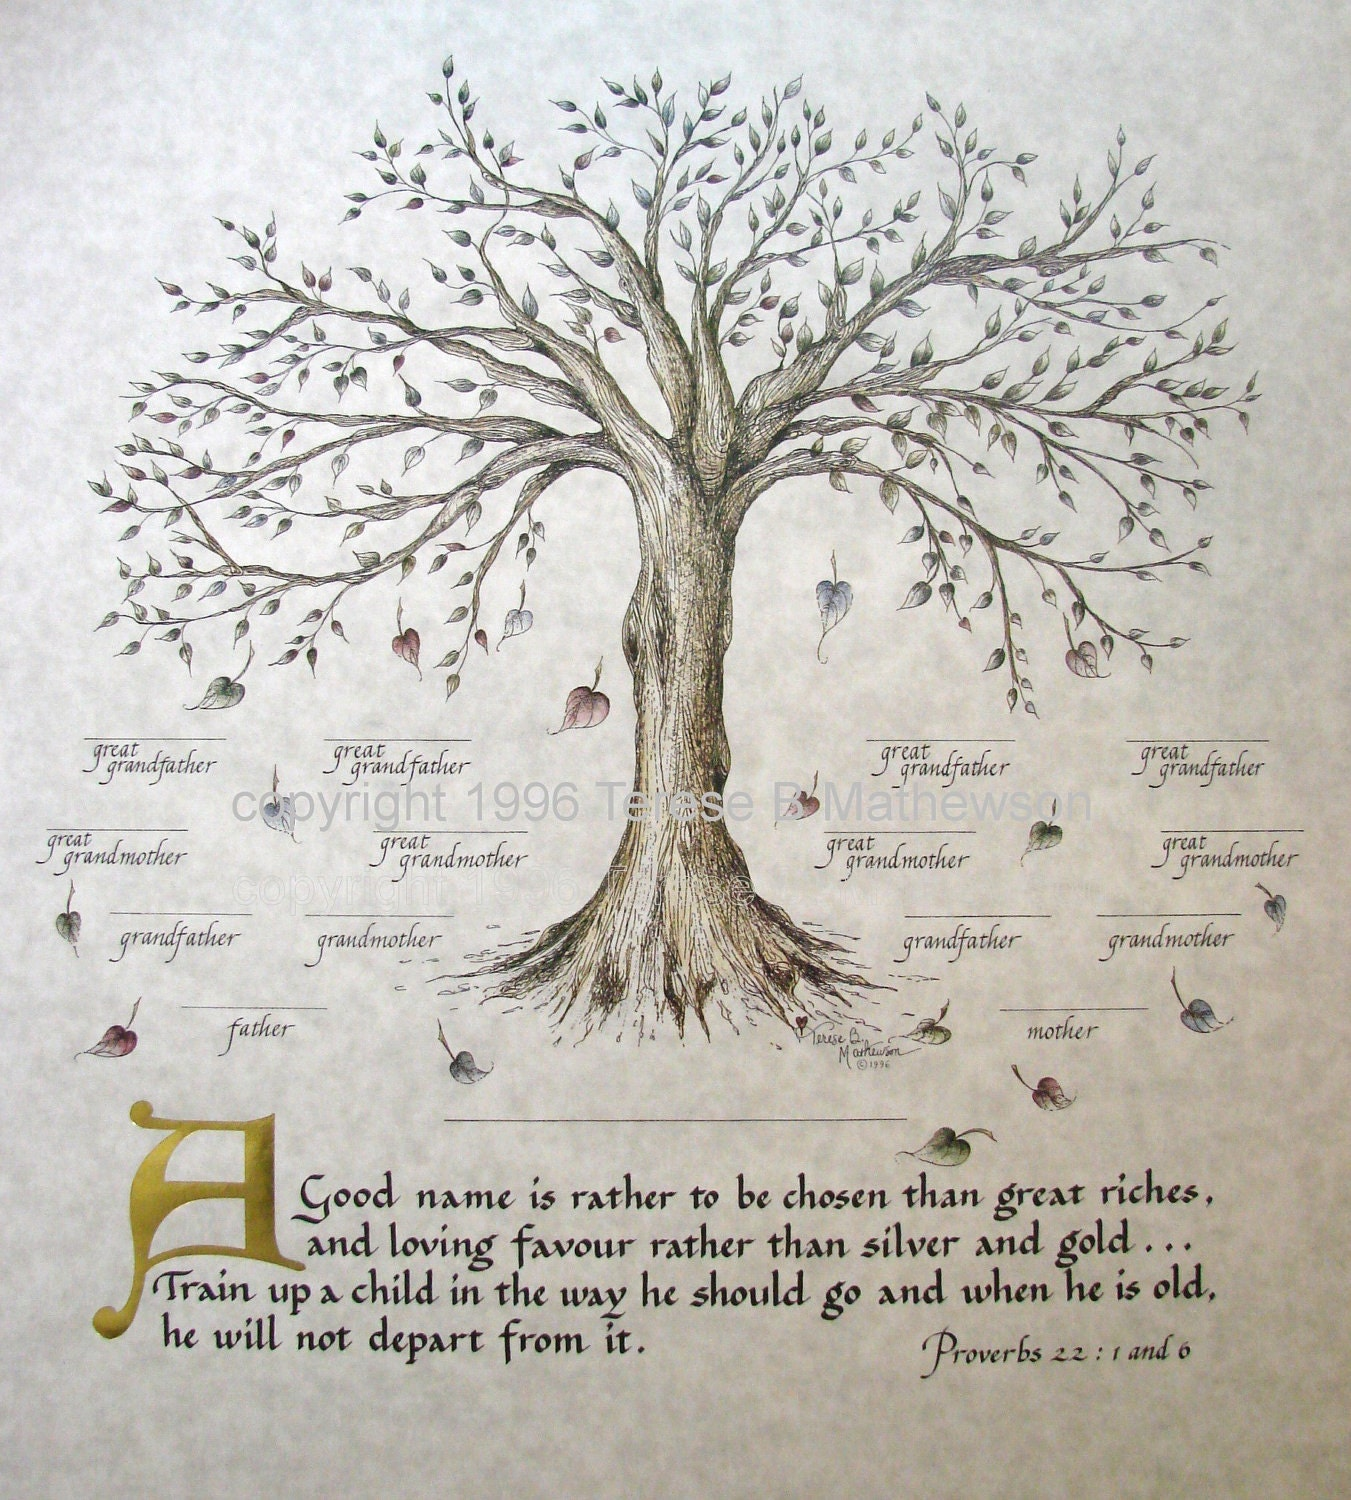 Wedding Tree Genealogy Chart By Melangeriedesign On Etsy: FAMILY TREE ART Print Package Of 3 By Applesofgold On Etsy